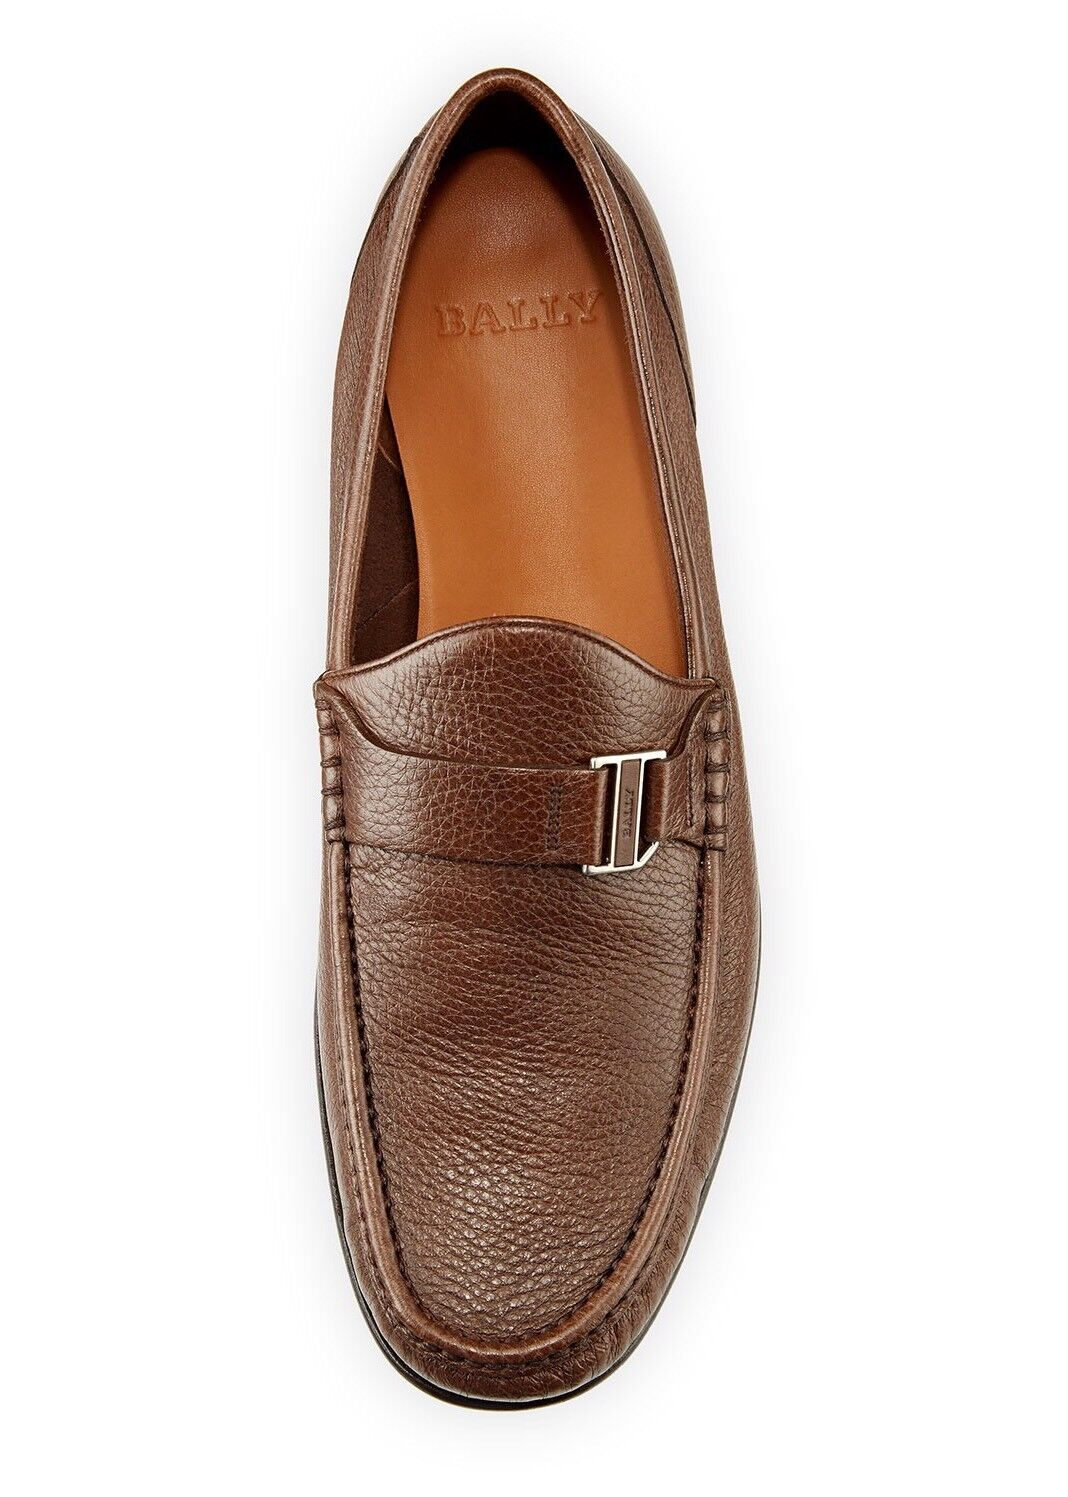 New Bally 'Suver' Brown Grained Pelle Moccasin Loafers Size 7.5/8.5   550.00